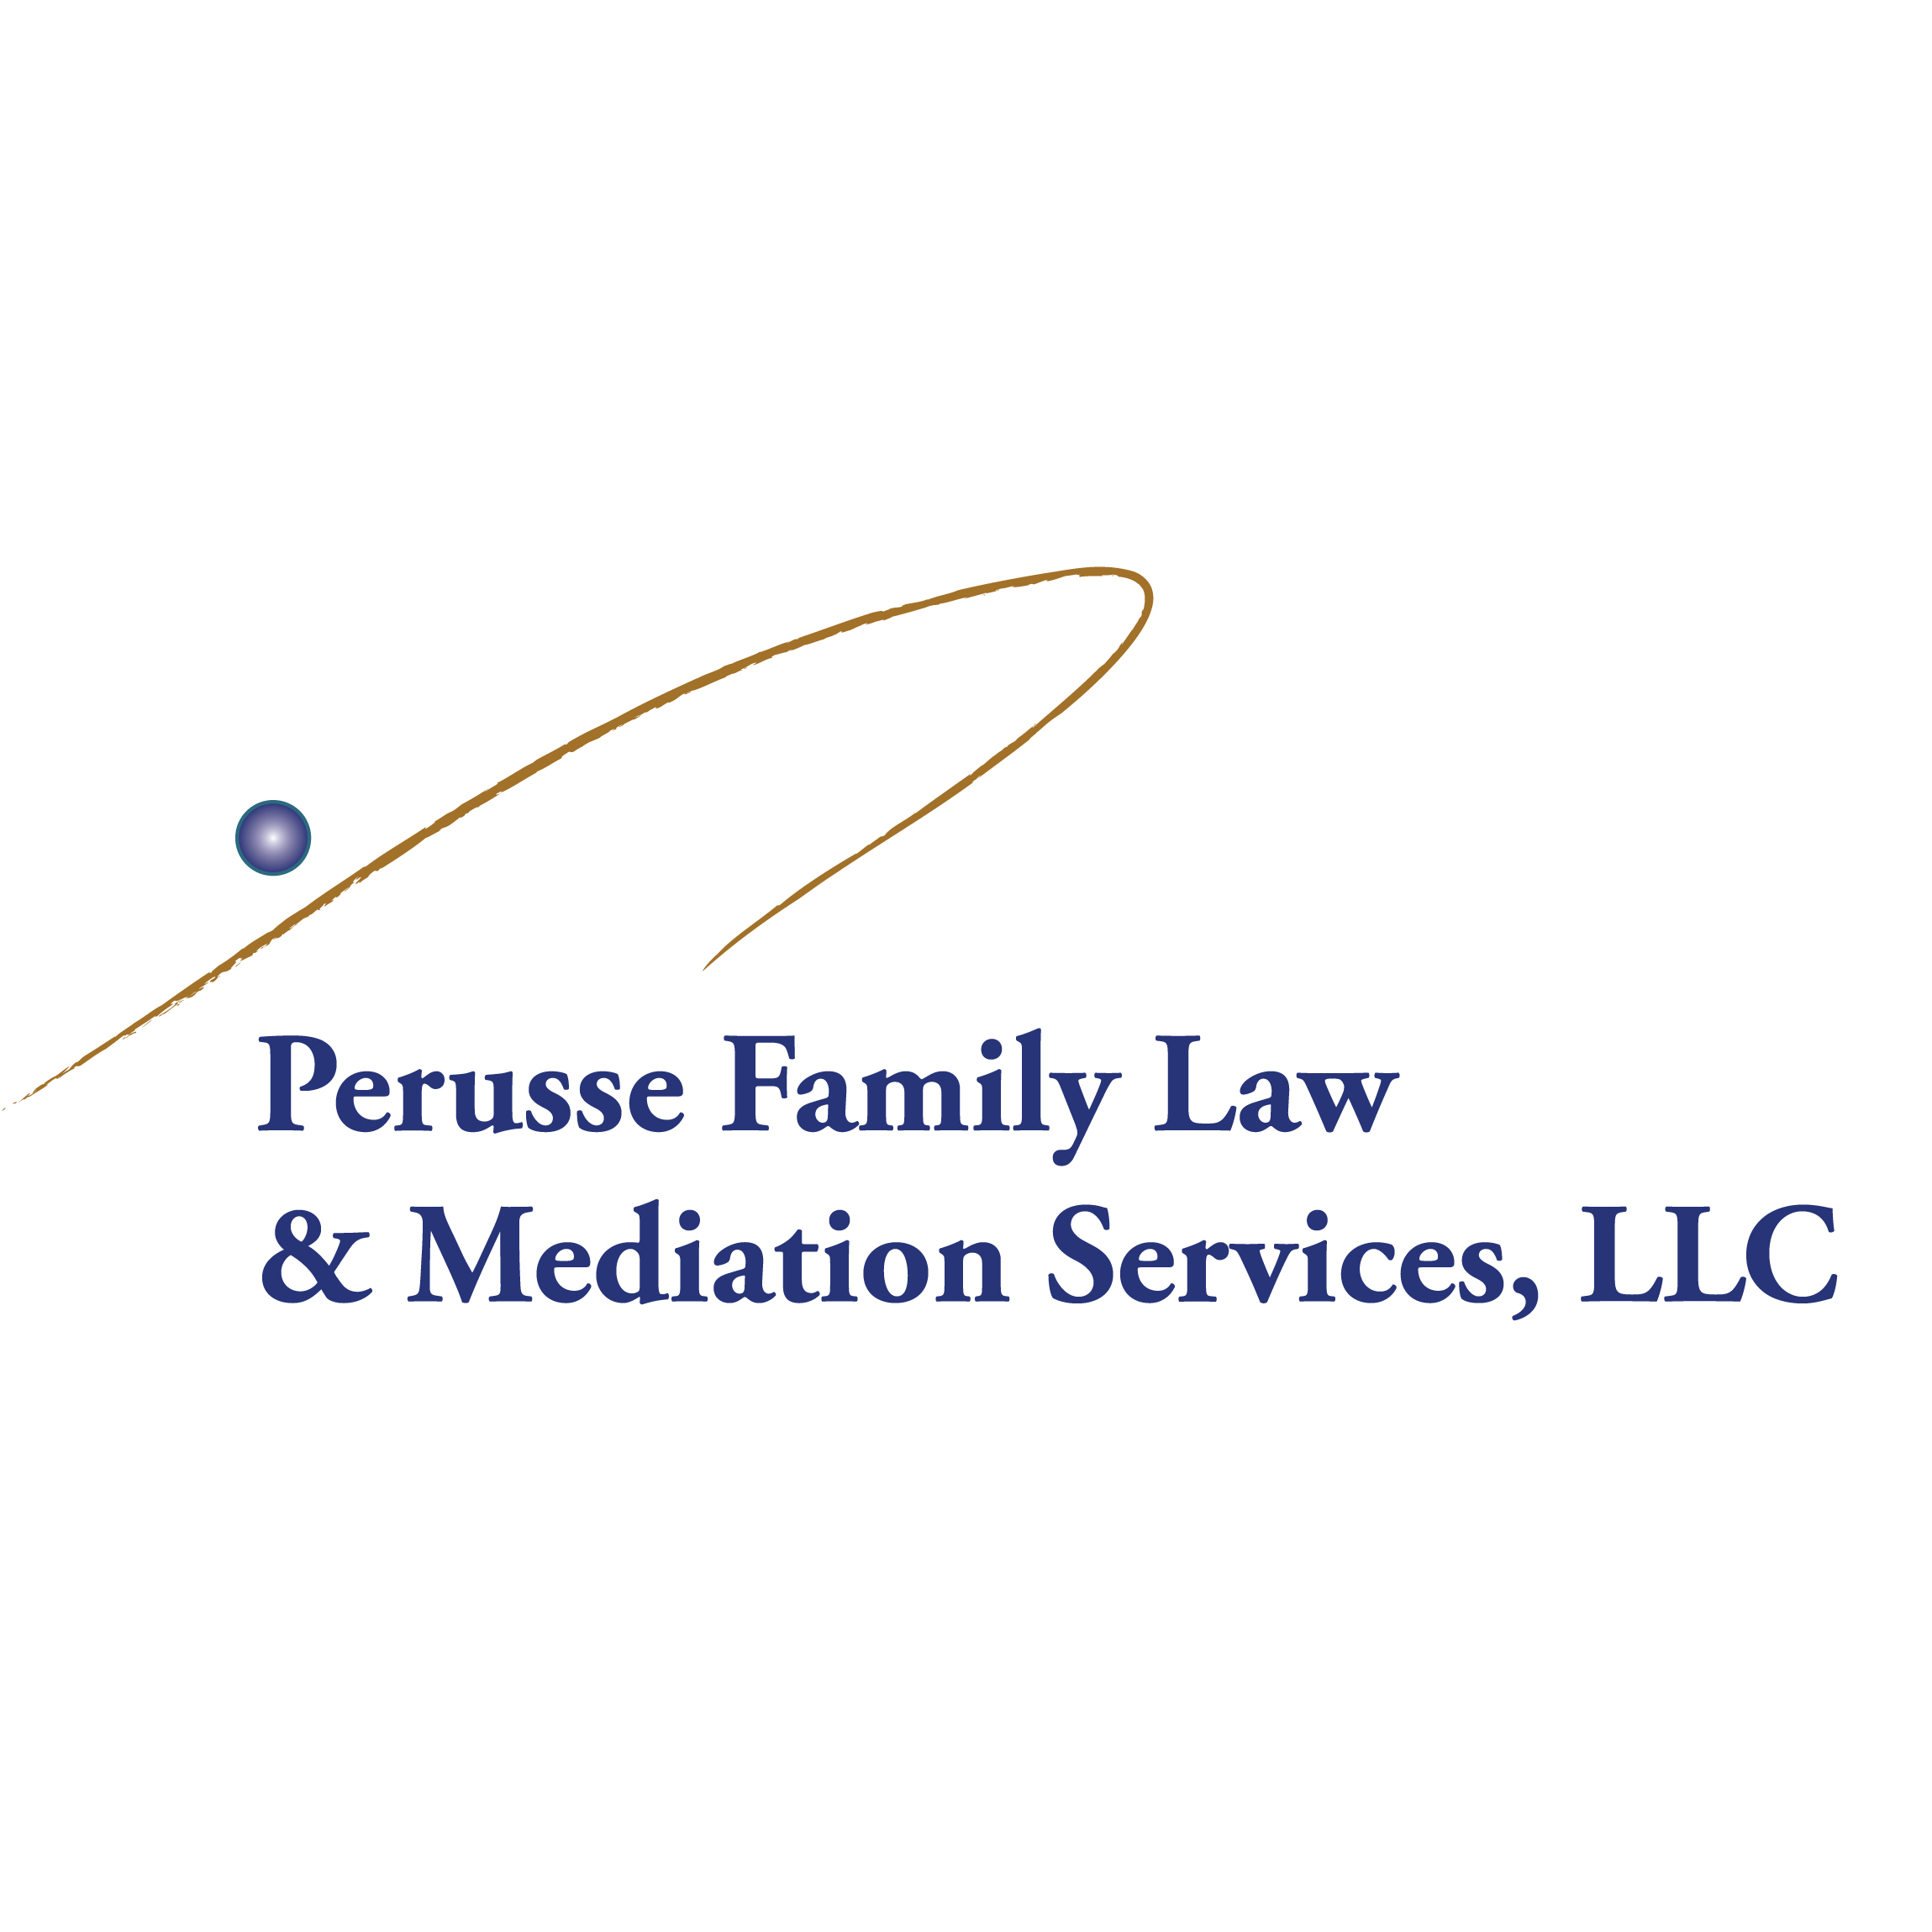 Perusse Family Law & Mediation Services, LLC